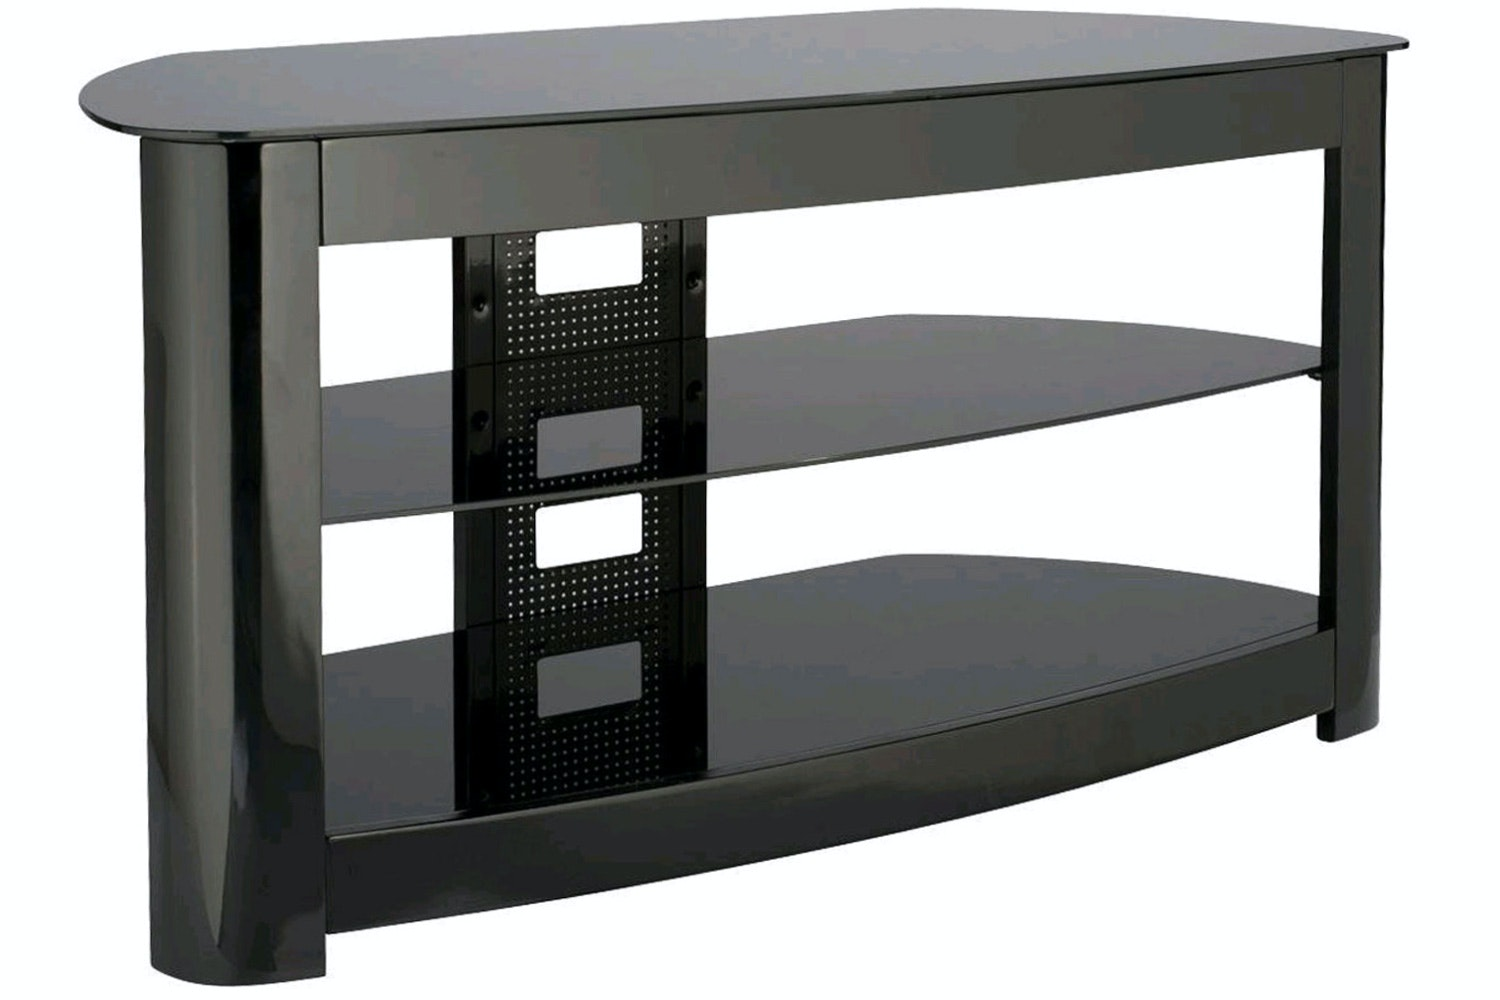 "Sanus Audio Video Stand - Fits AV Components and TVs up to 56"" Black 